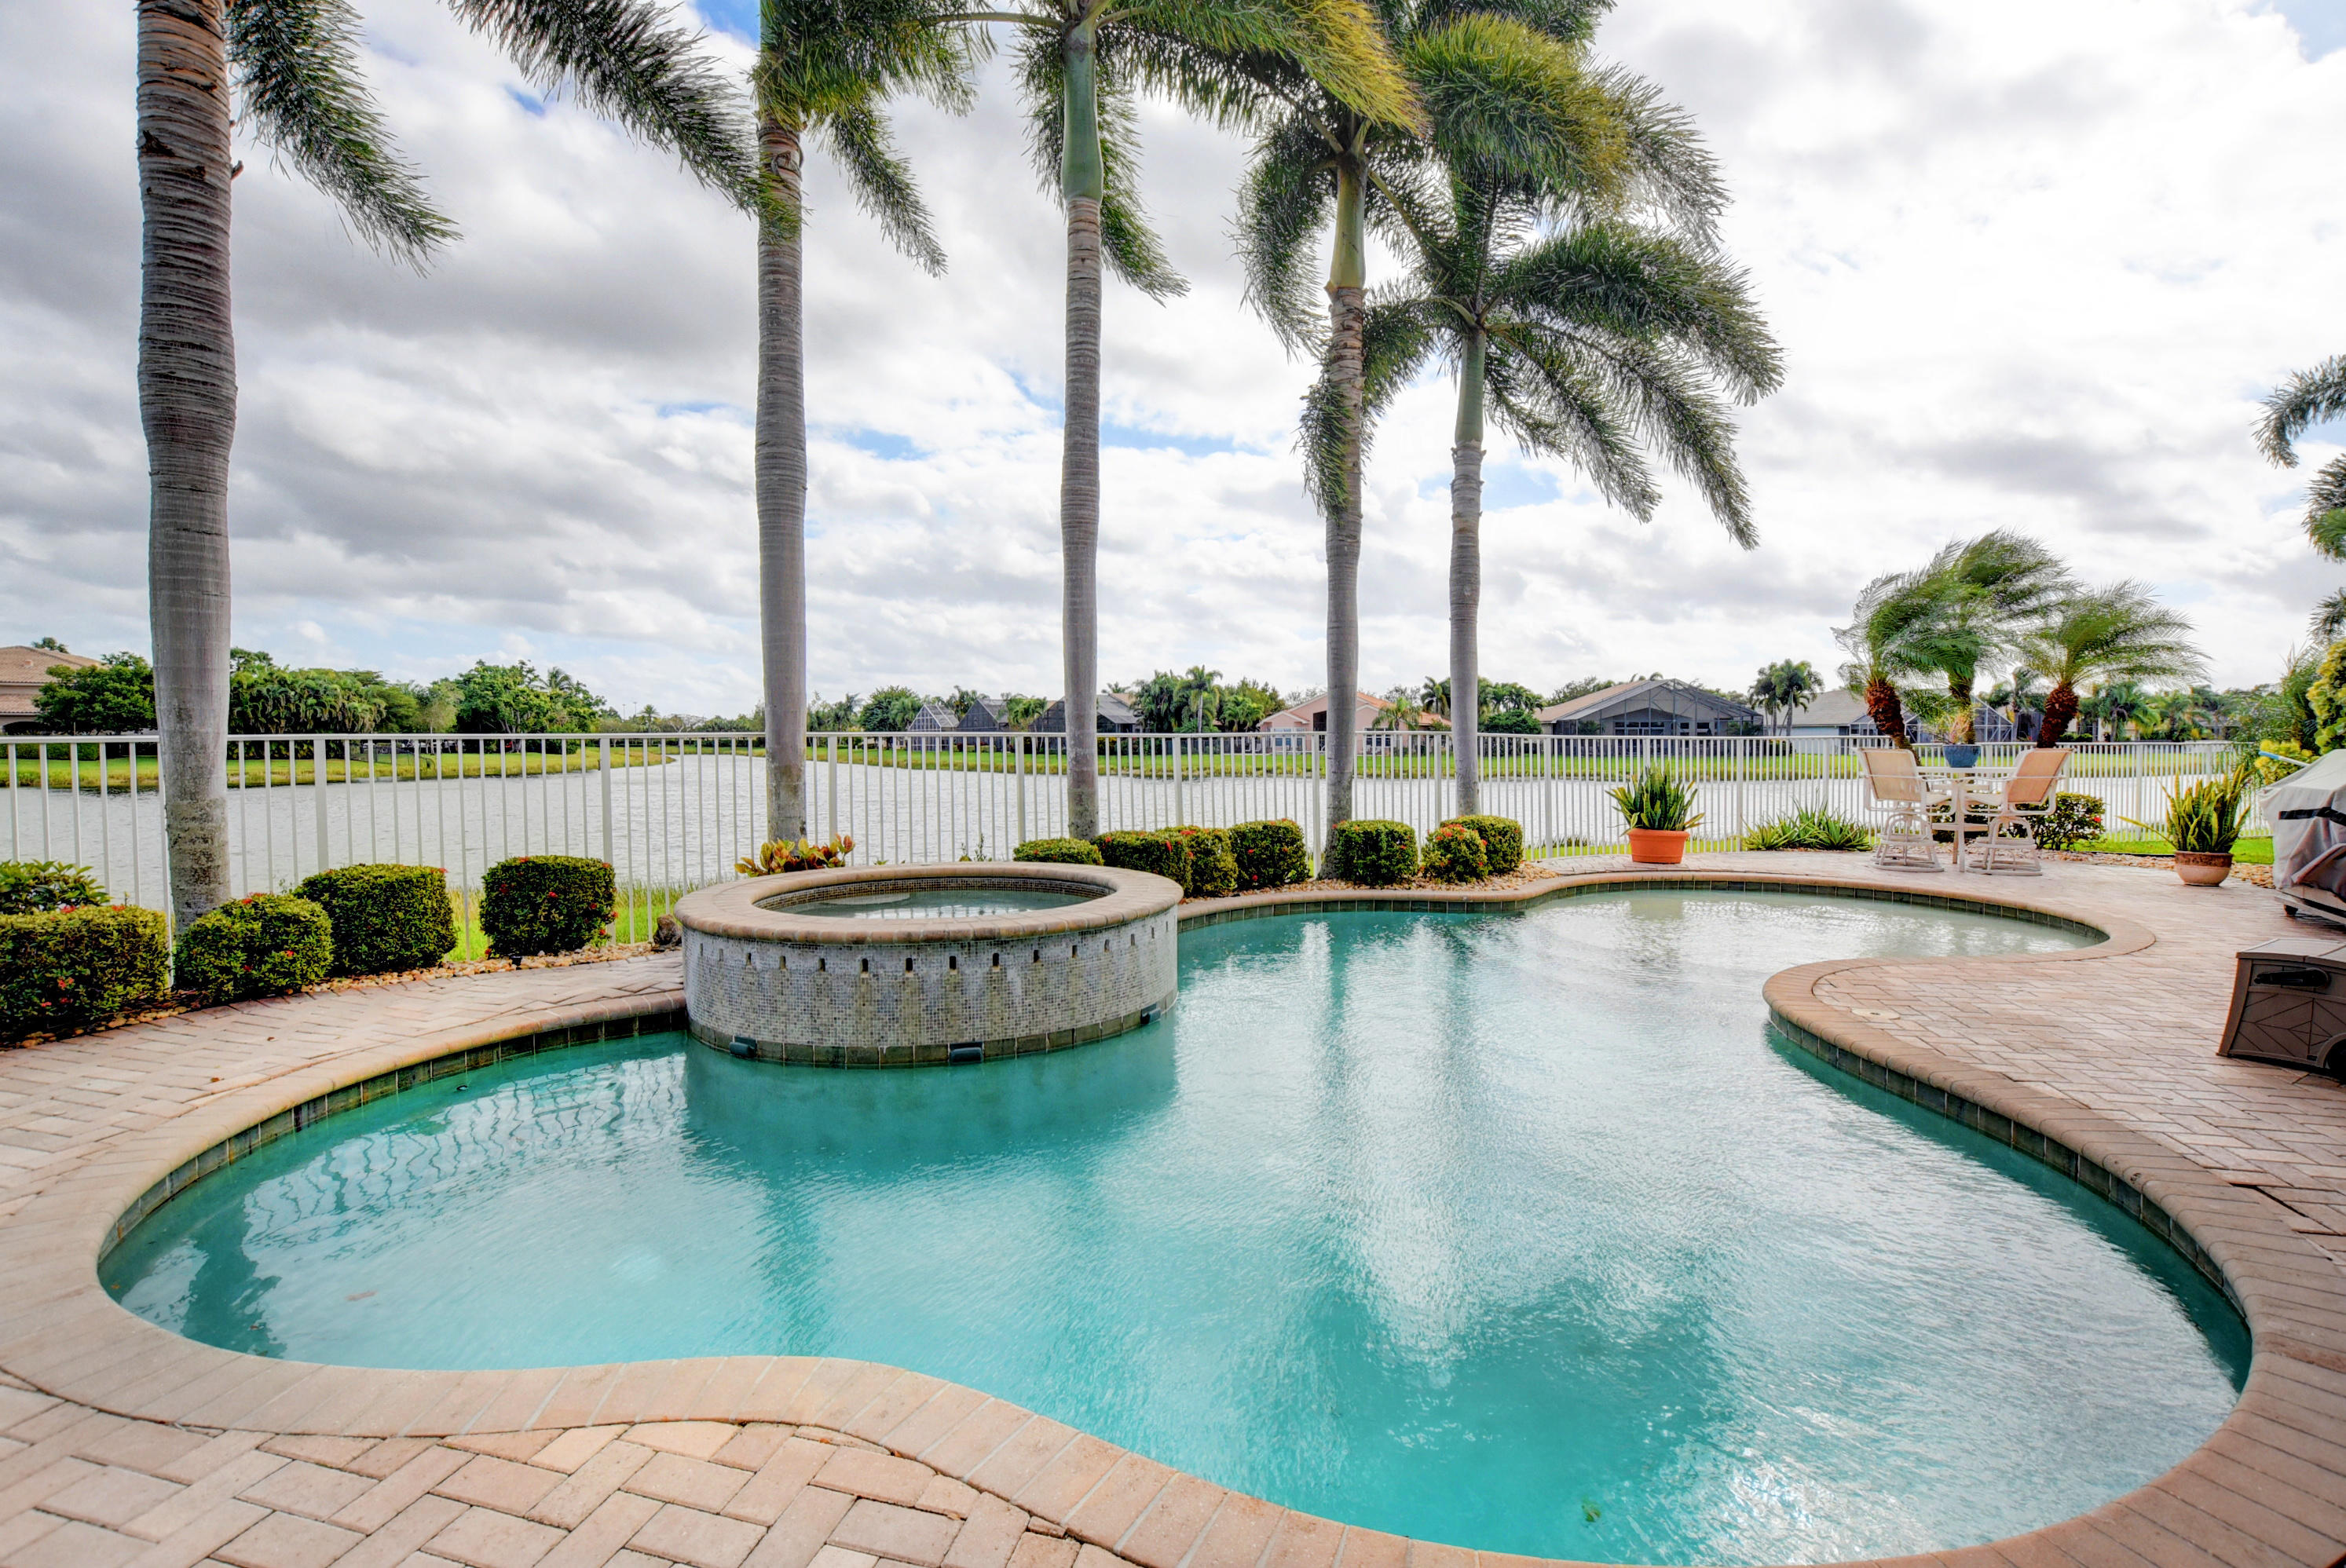 8574 Vintage Reserve Terrace, Lake Worth, FL 33467